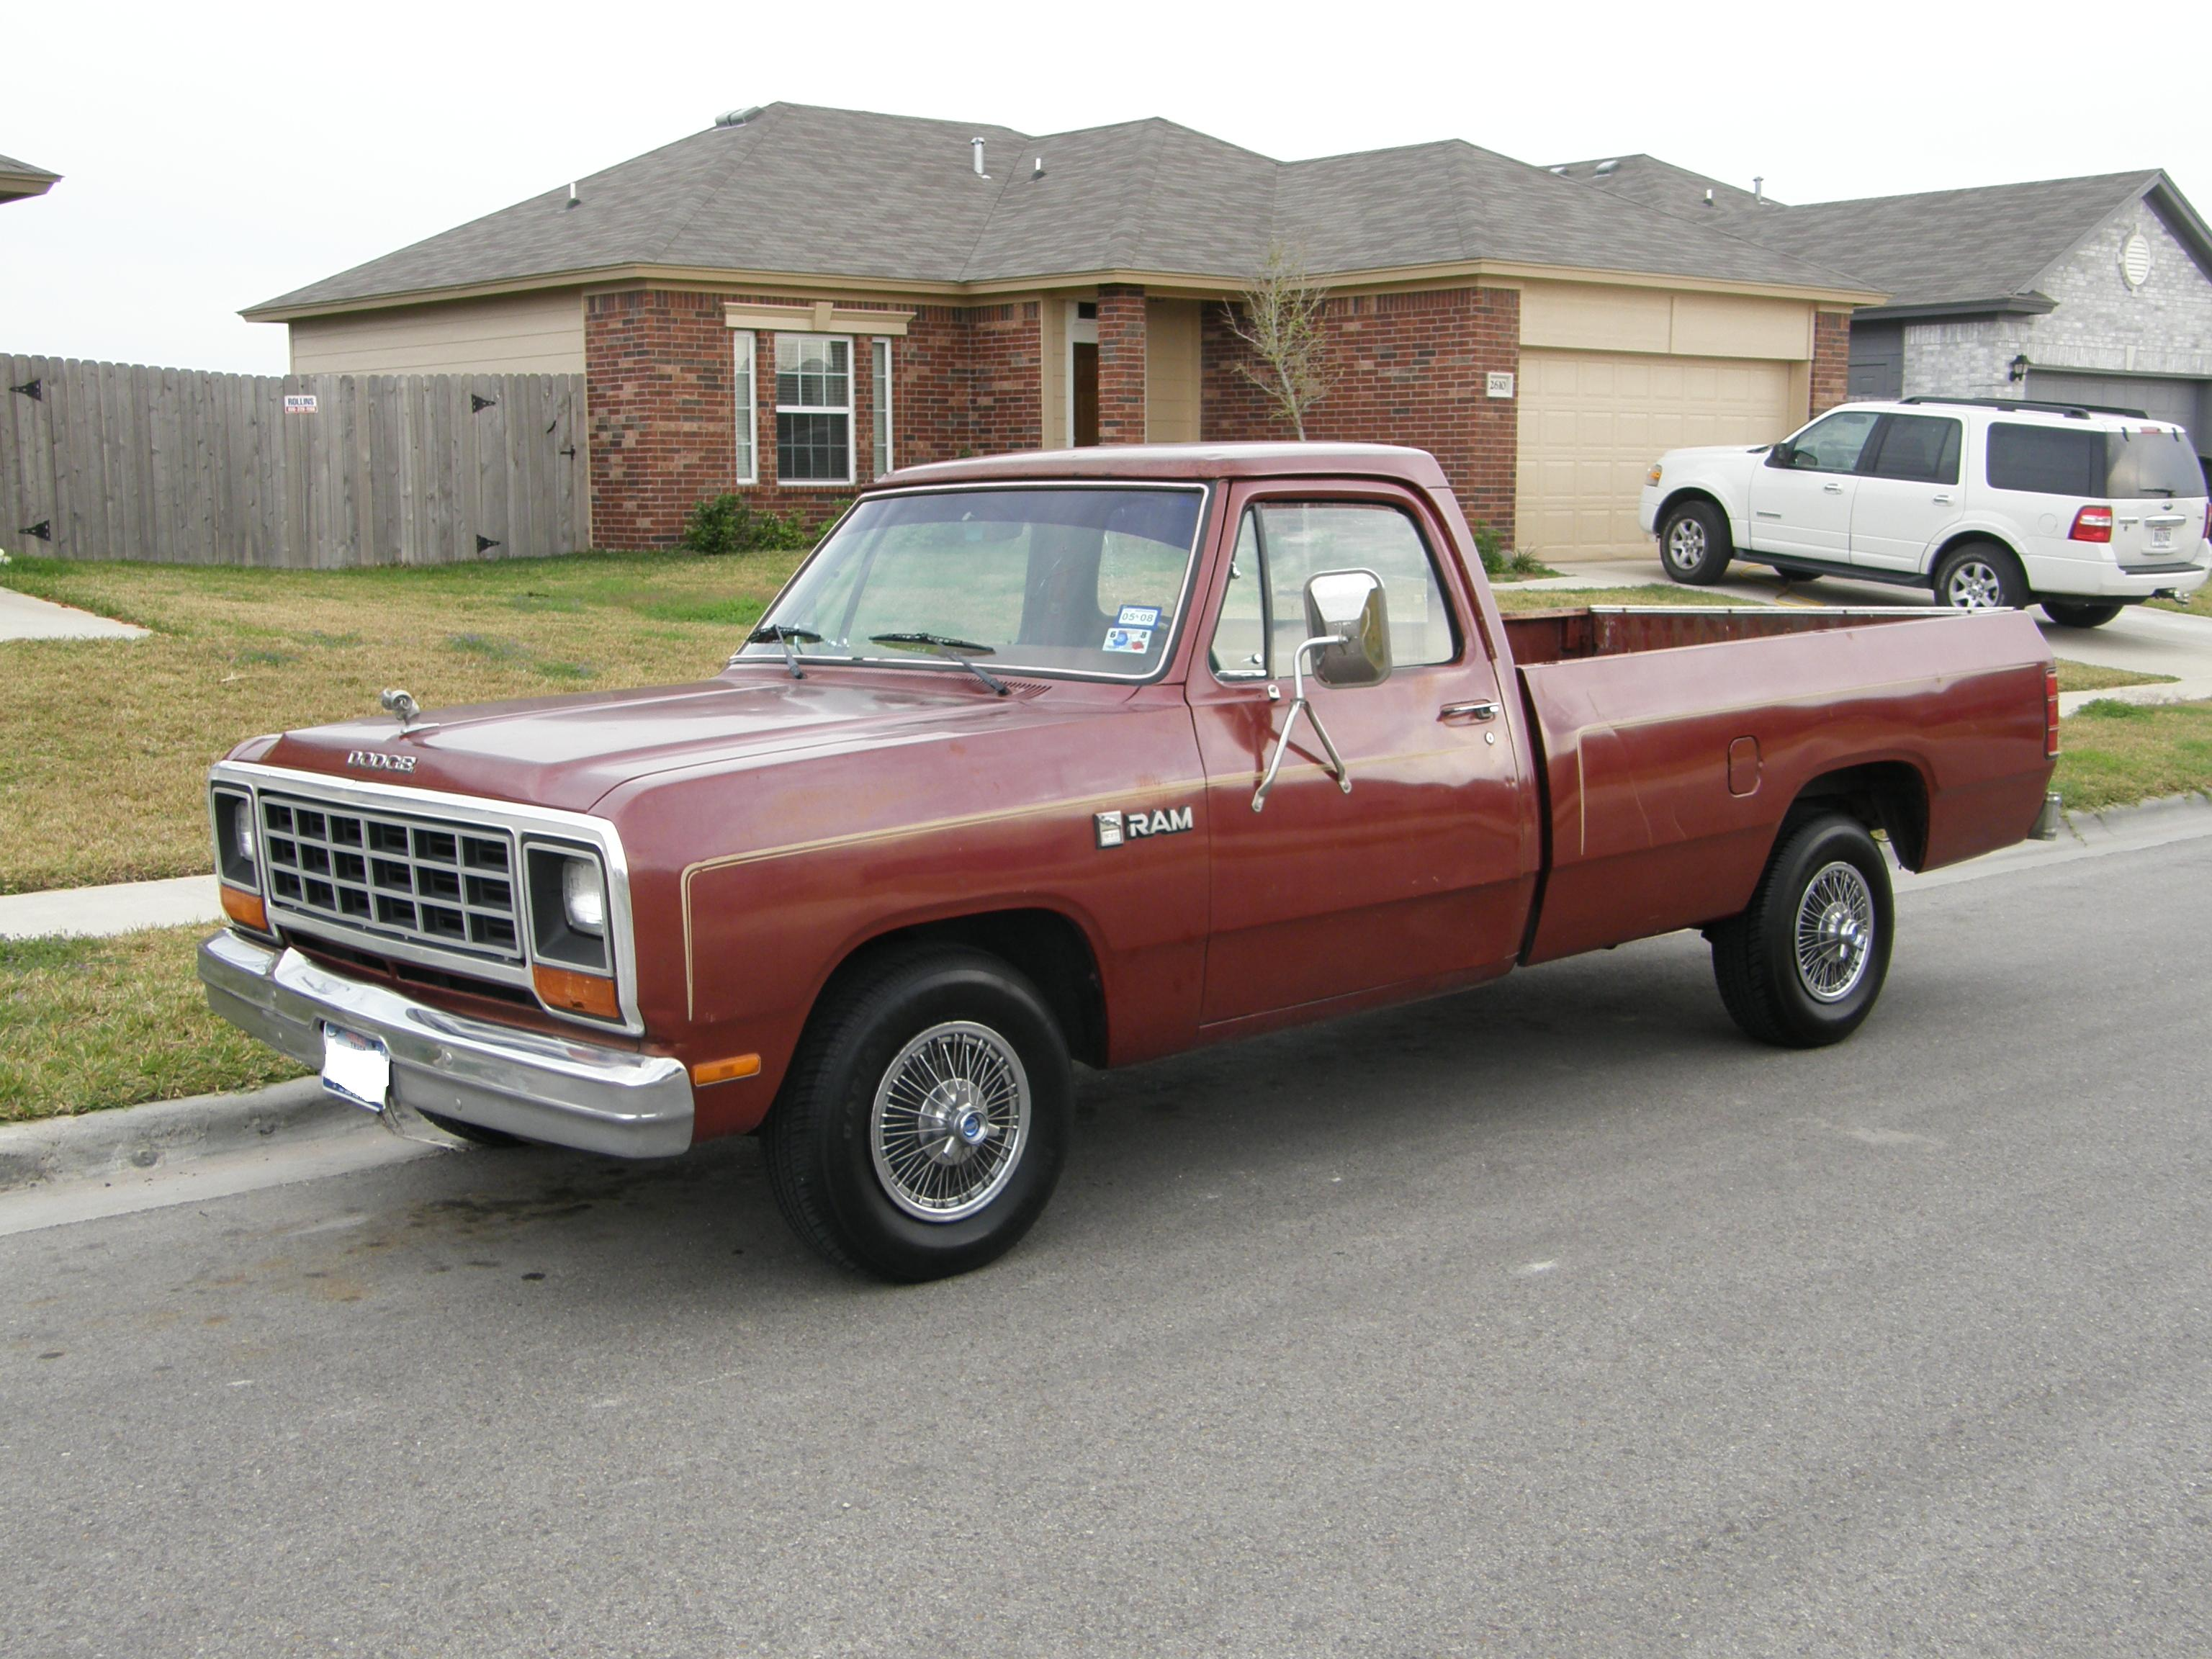 File:1985 Dodge Ram.JPG - Wikimedia Commons